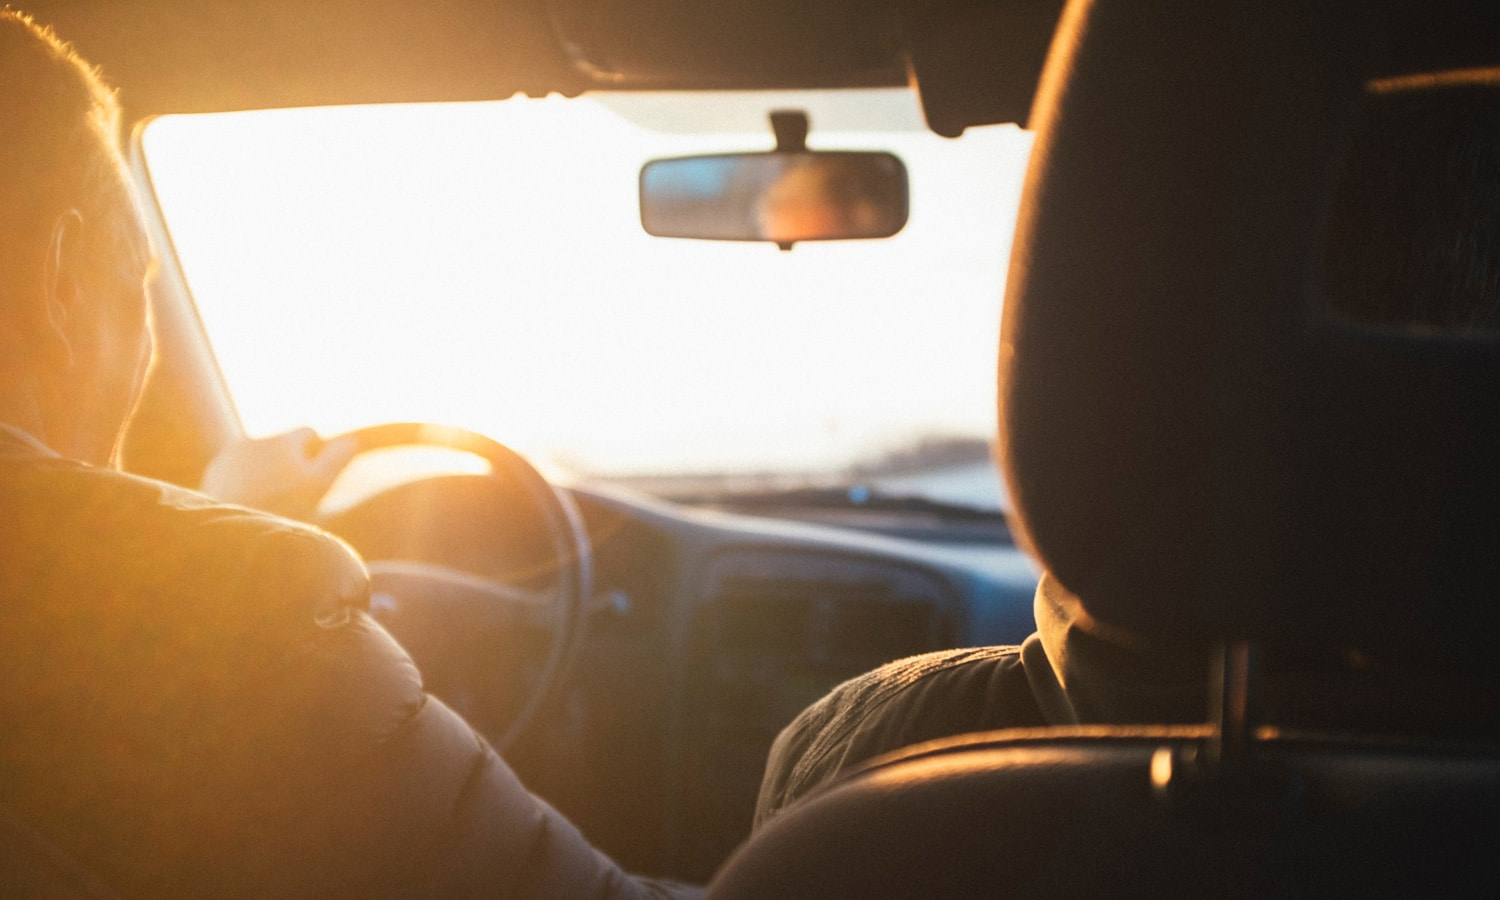 Driving With Kids In Your Car Can Lead To Felony Charges If You Have THC In Your System